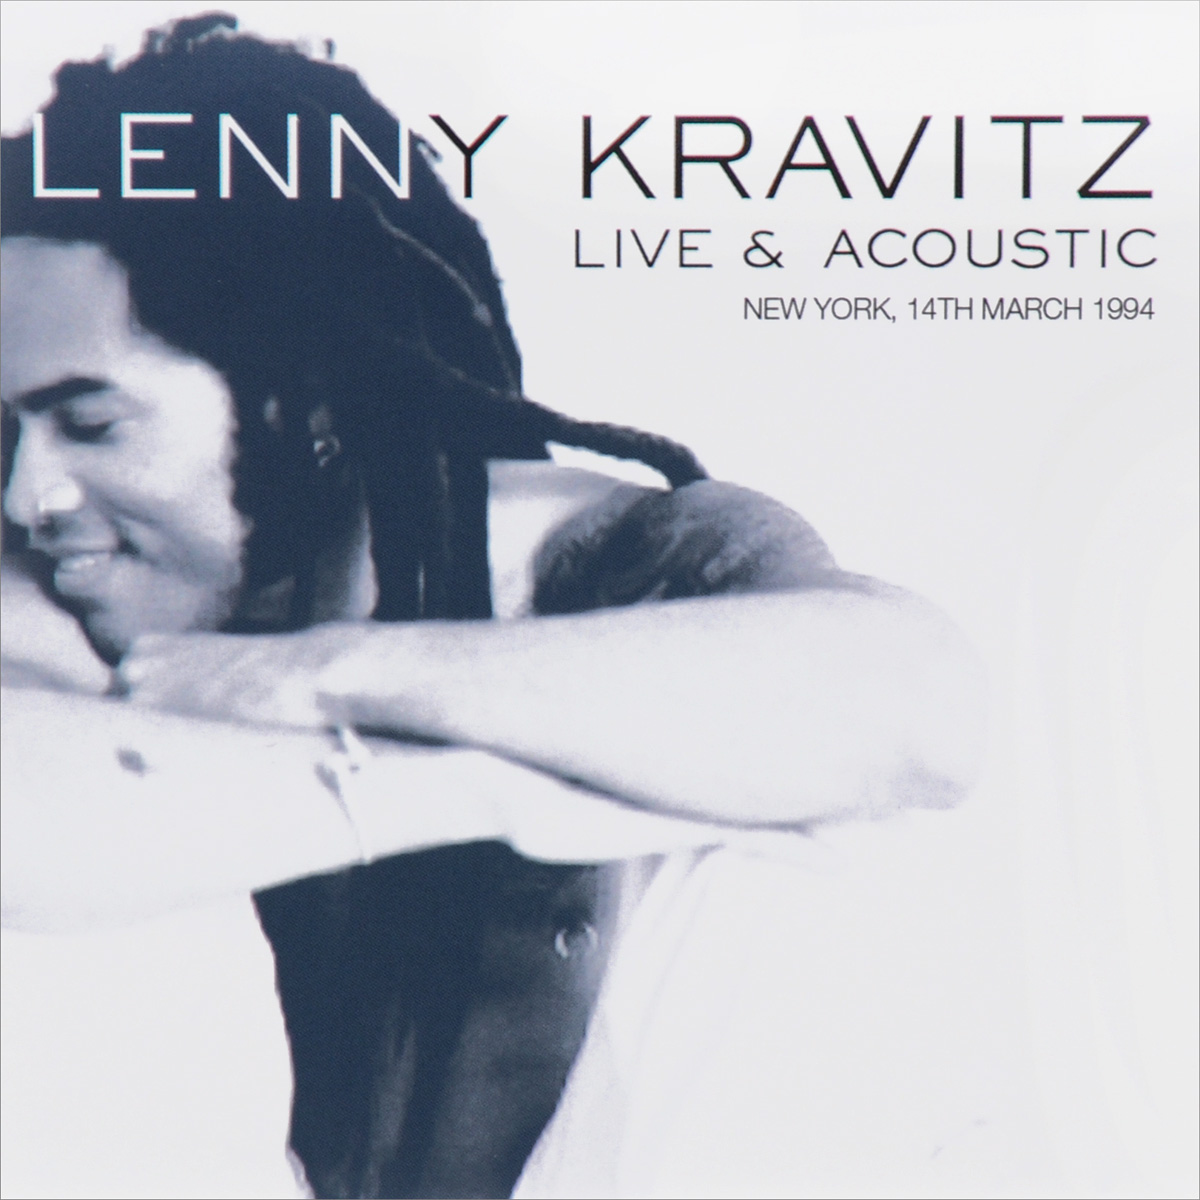 Ленни Кравиц Lenny Kravitz. Live & Acoustic. New York, 14th March 1994 lenny kravitz